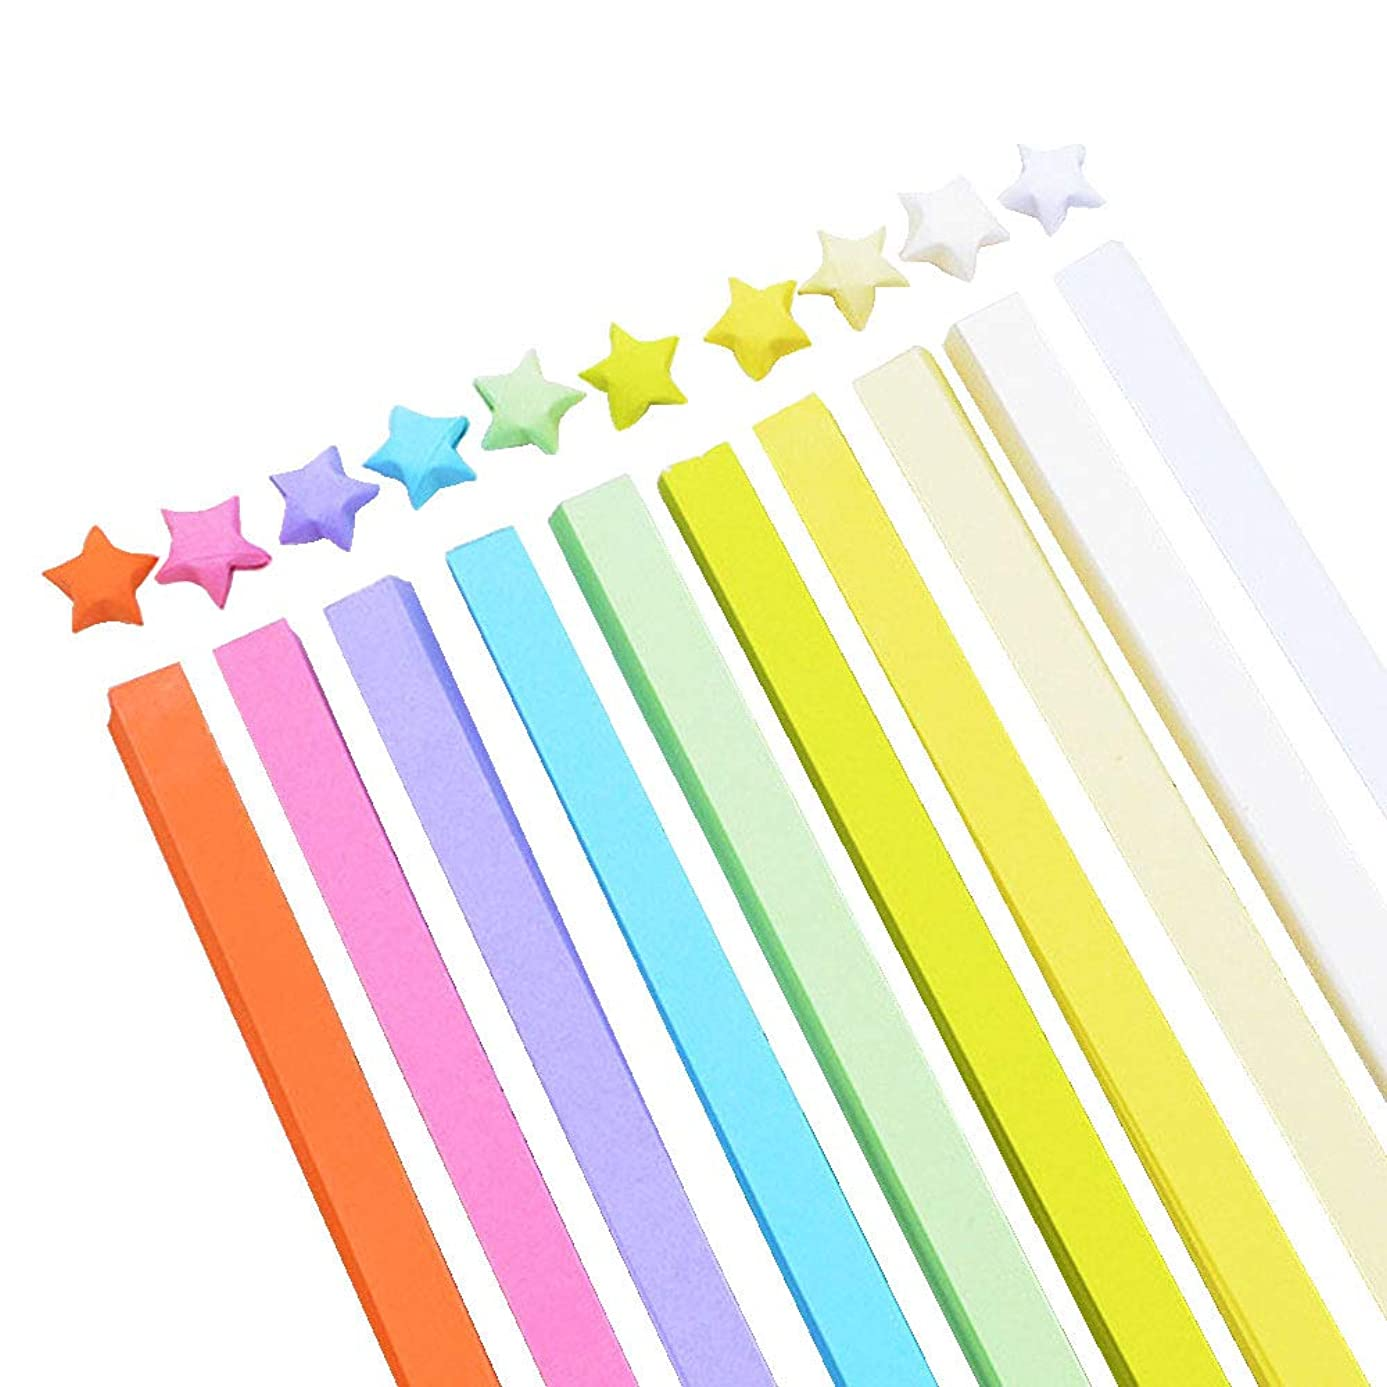 HanYoer 1030 Sheets Origami Paper Stars, Colorful Handcraft Origami Lucky Star Paper DIY Paper Arts Creativity (10 Colors)